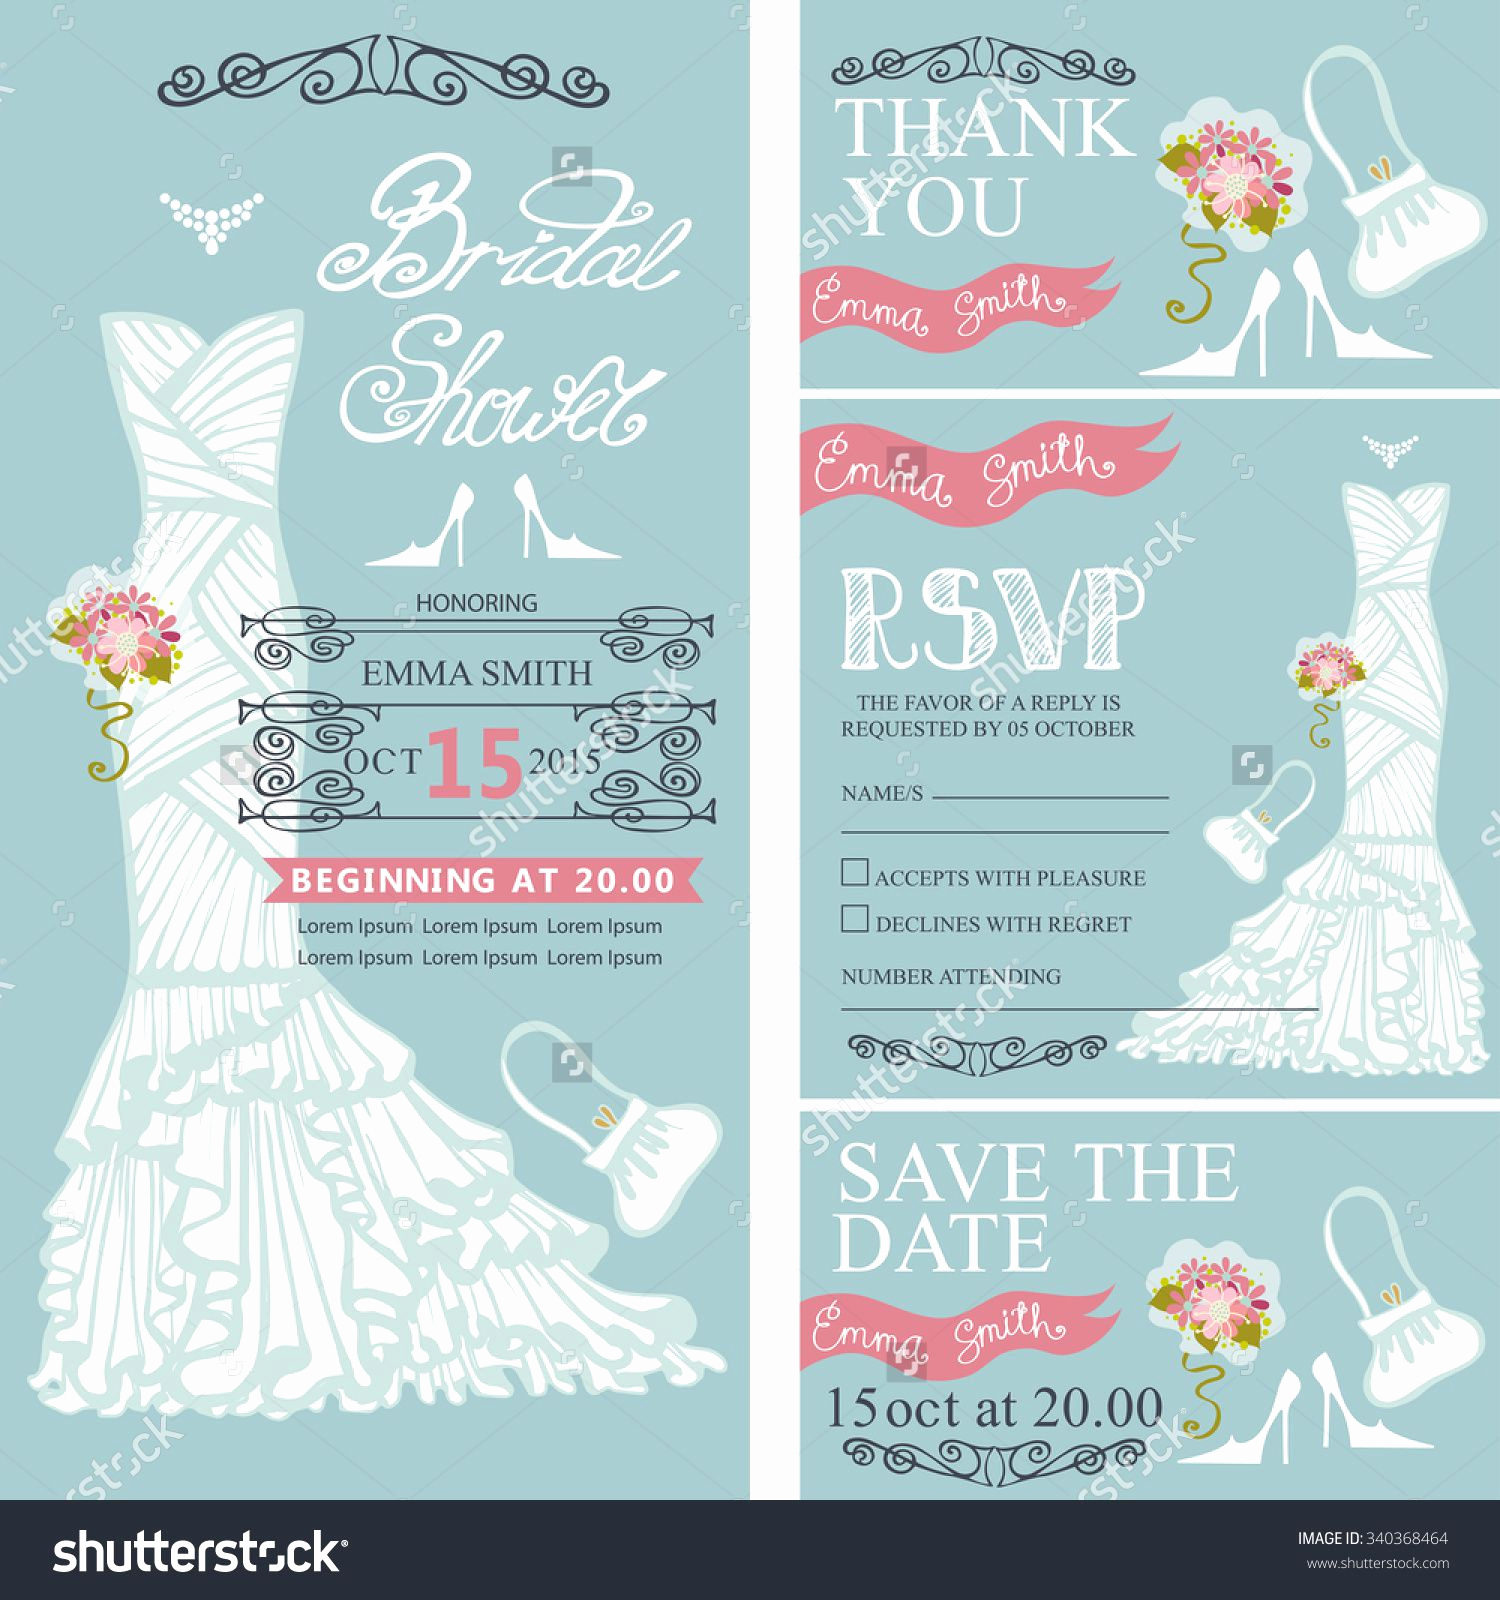 Bridal Shower Invitation Template Free Lovely Bridal Shower Invitation Verbiage Bridal Shower